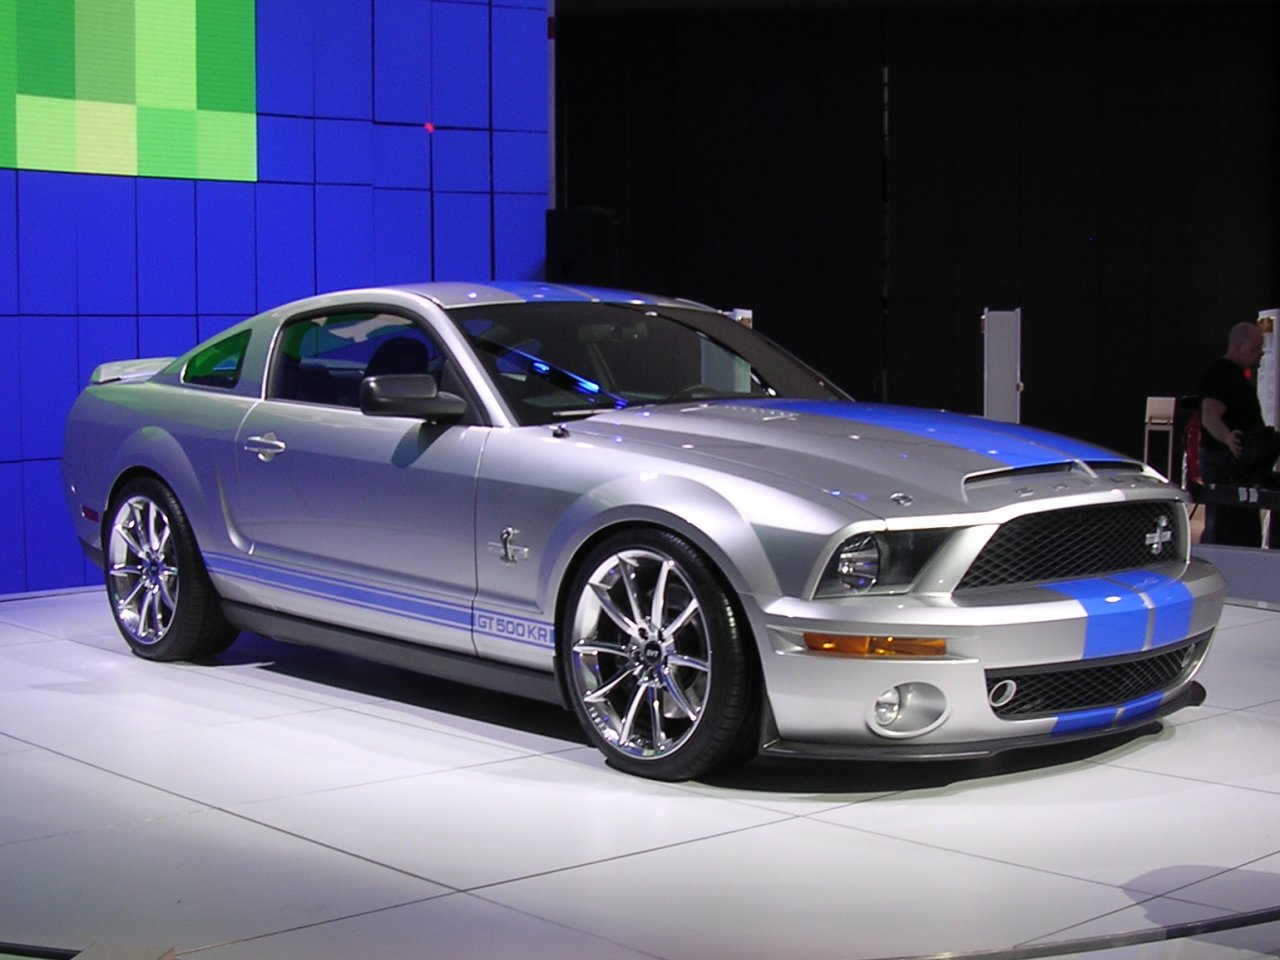 Ford shelby photo - 4